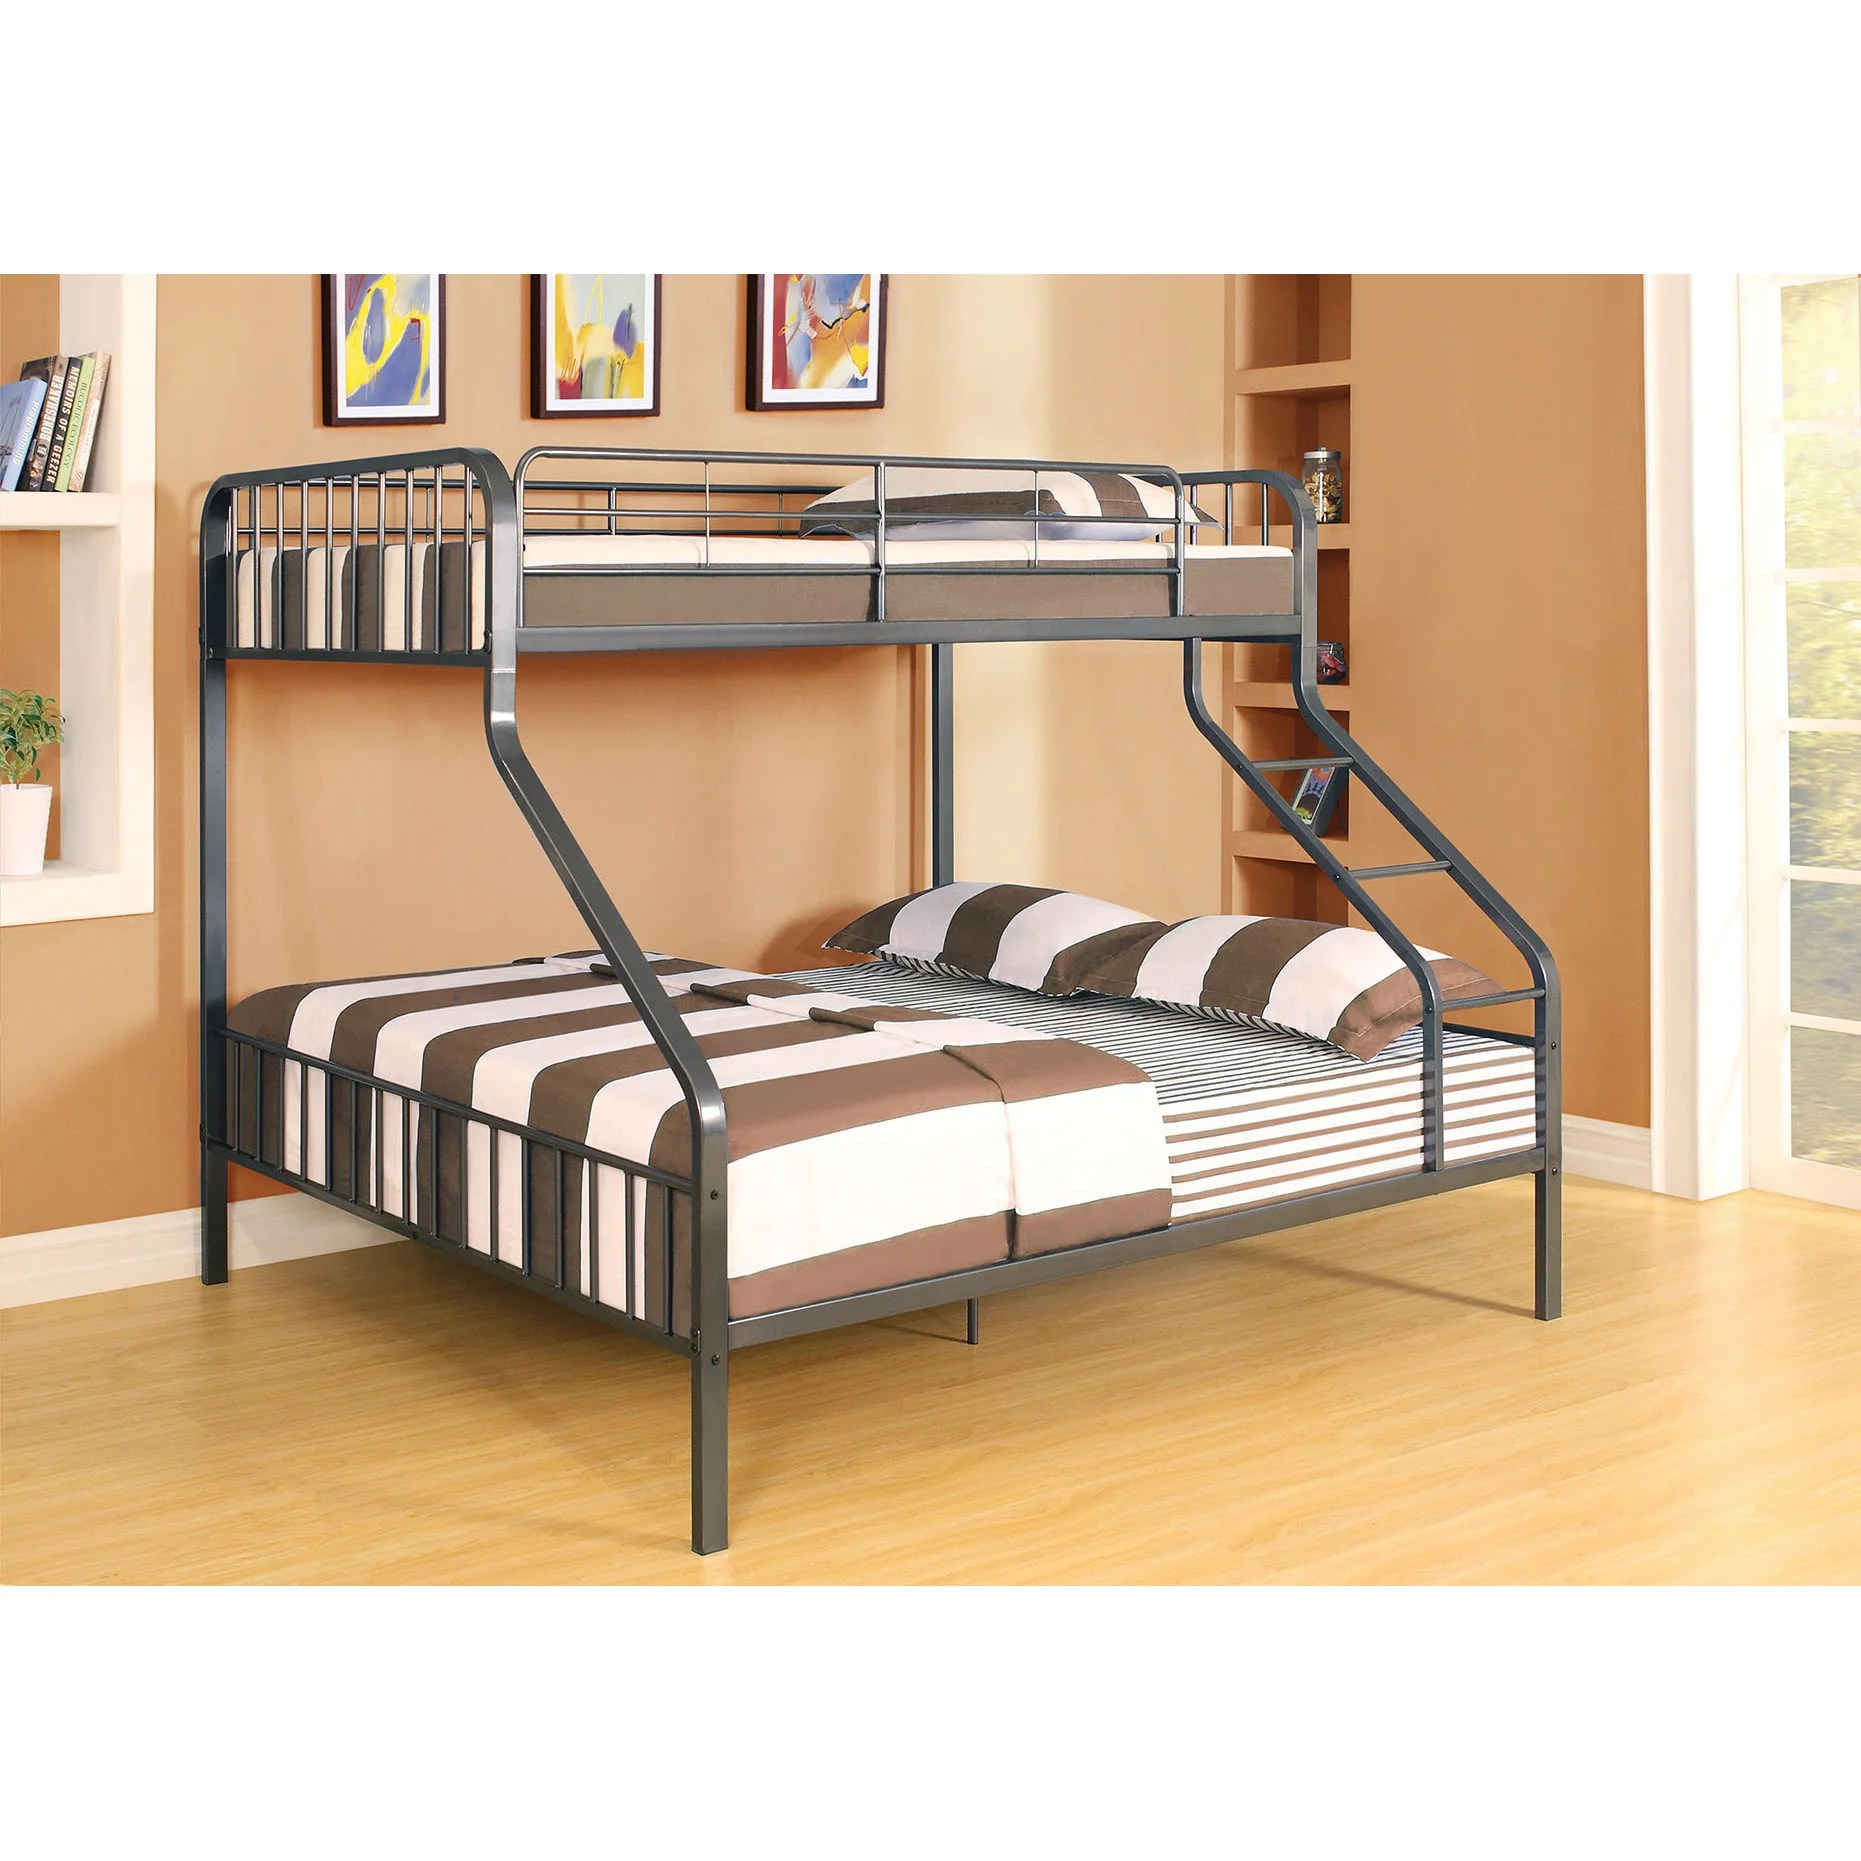 Caius Gunmetal Twin Xl Queen Bunk Bed On Sale Overstock 12033438